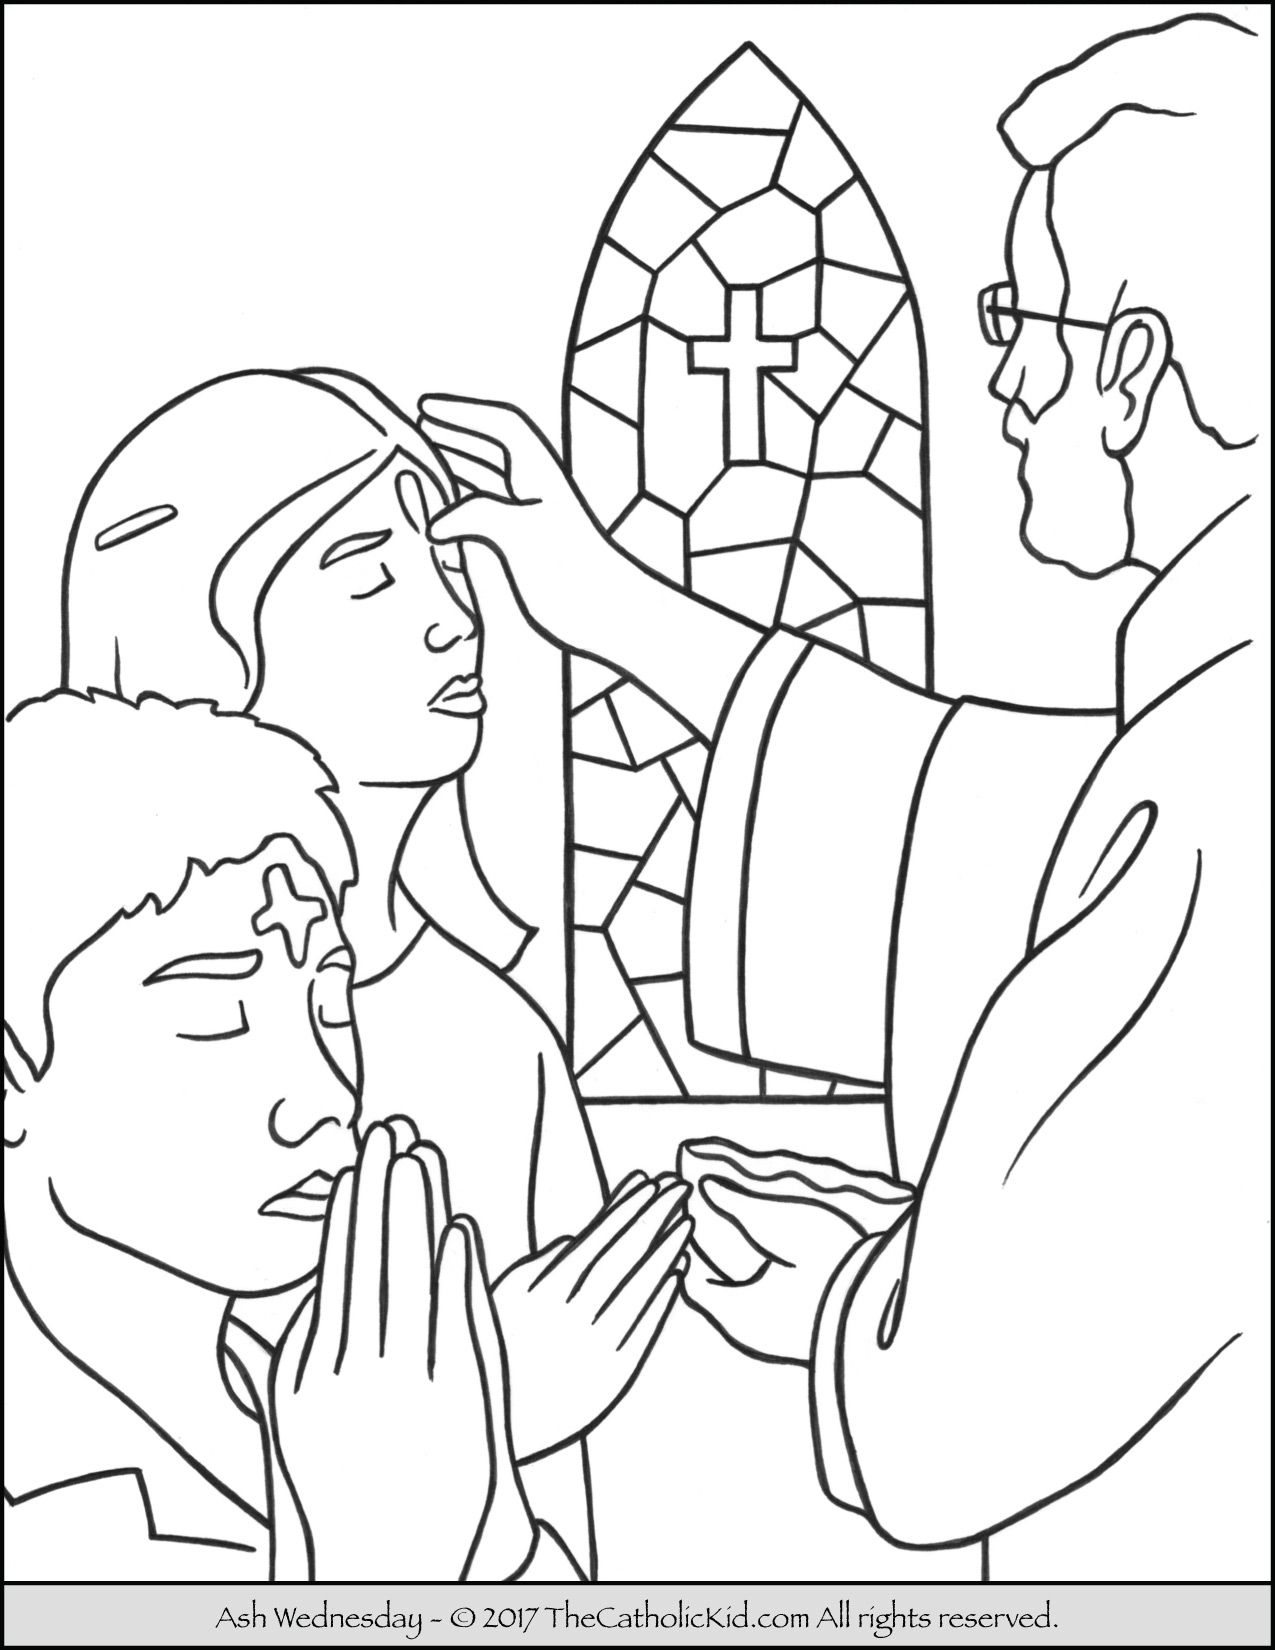 ash wednesday coloring pages # 1